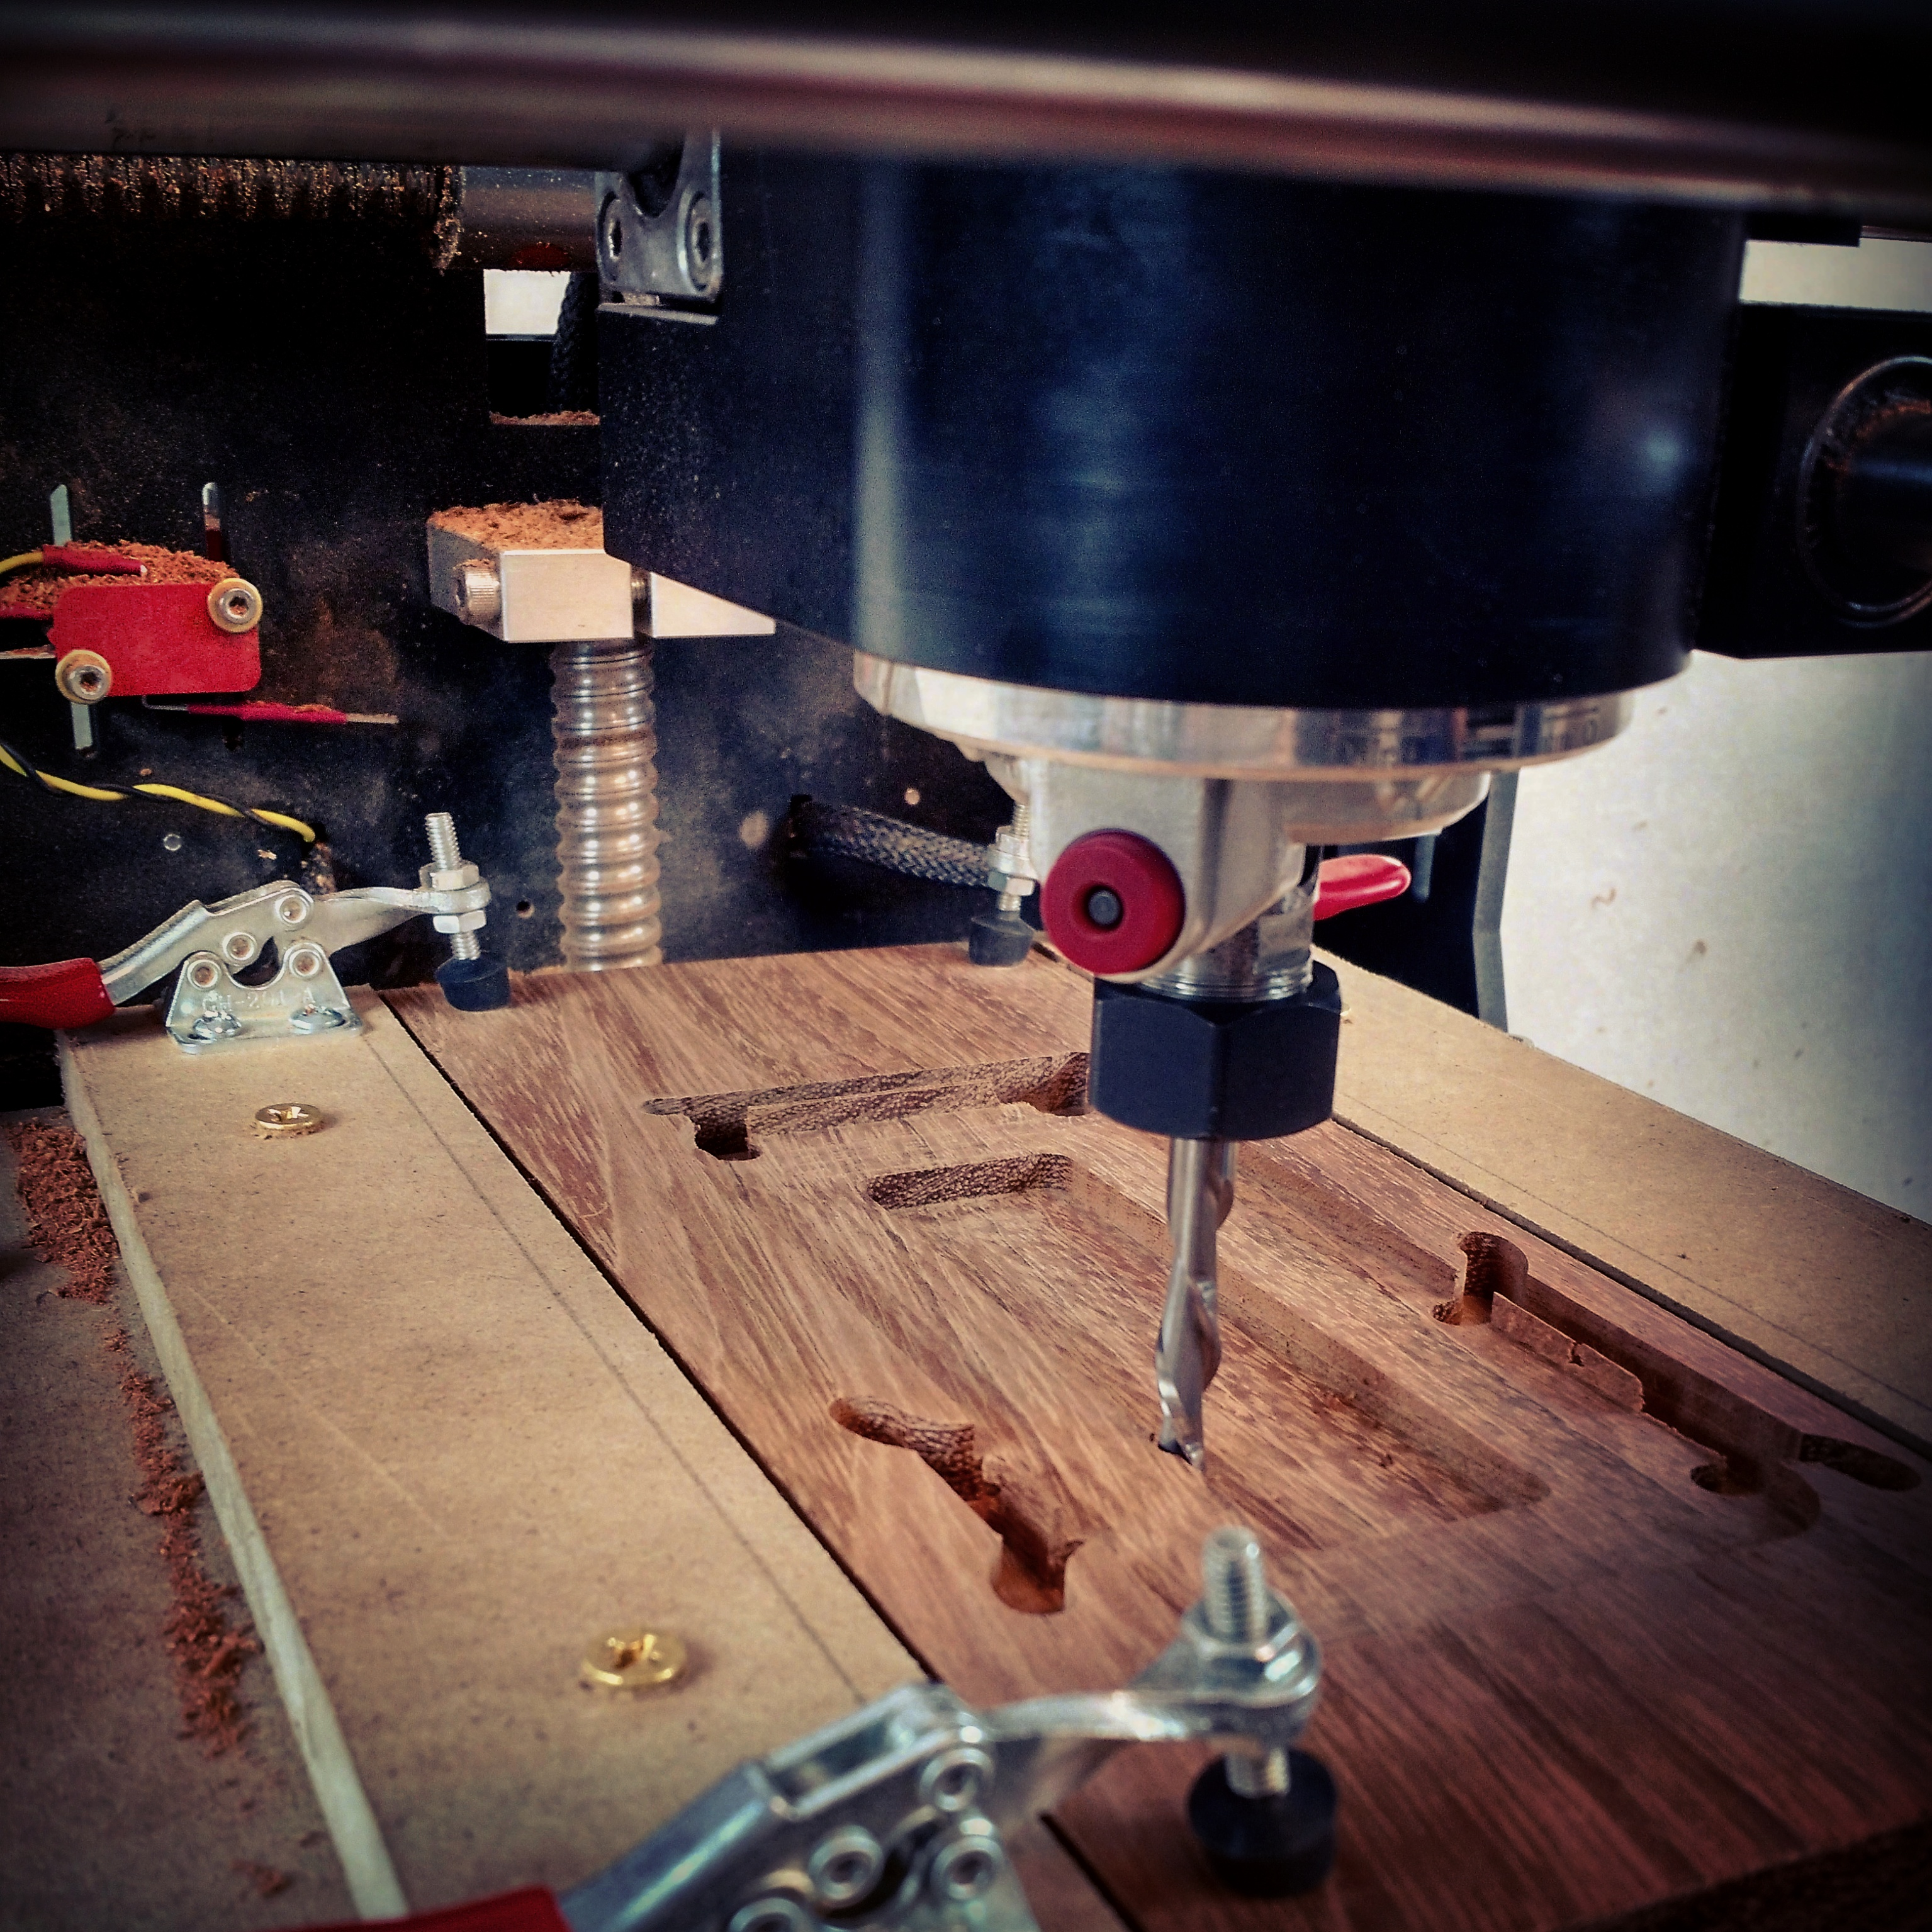 BoXZY in CNC Function Mode